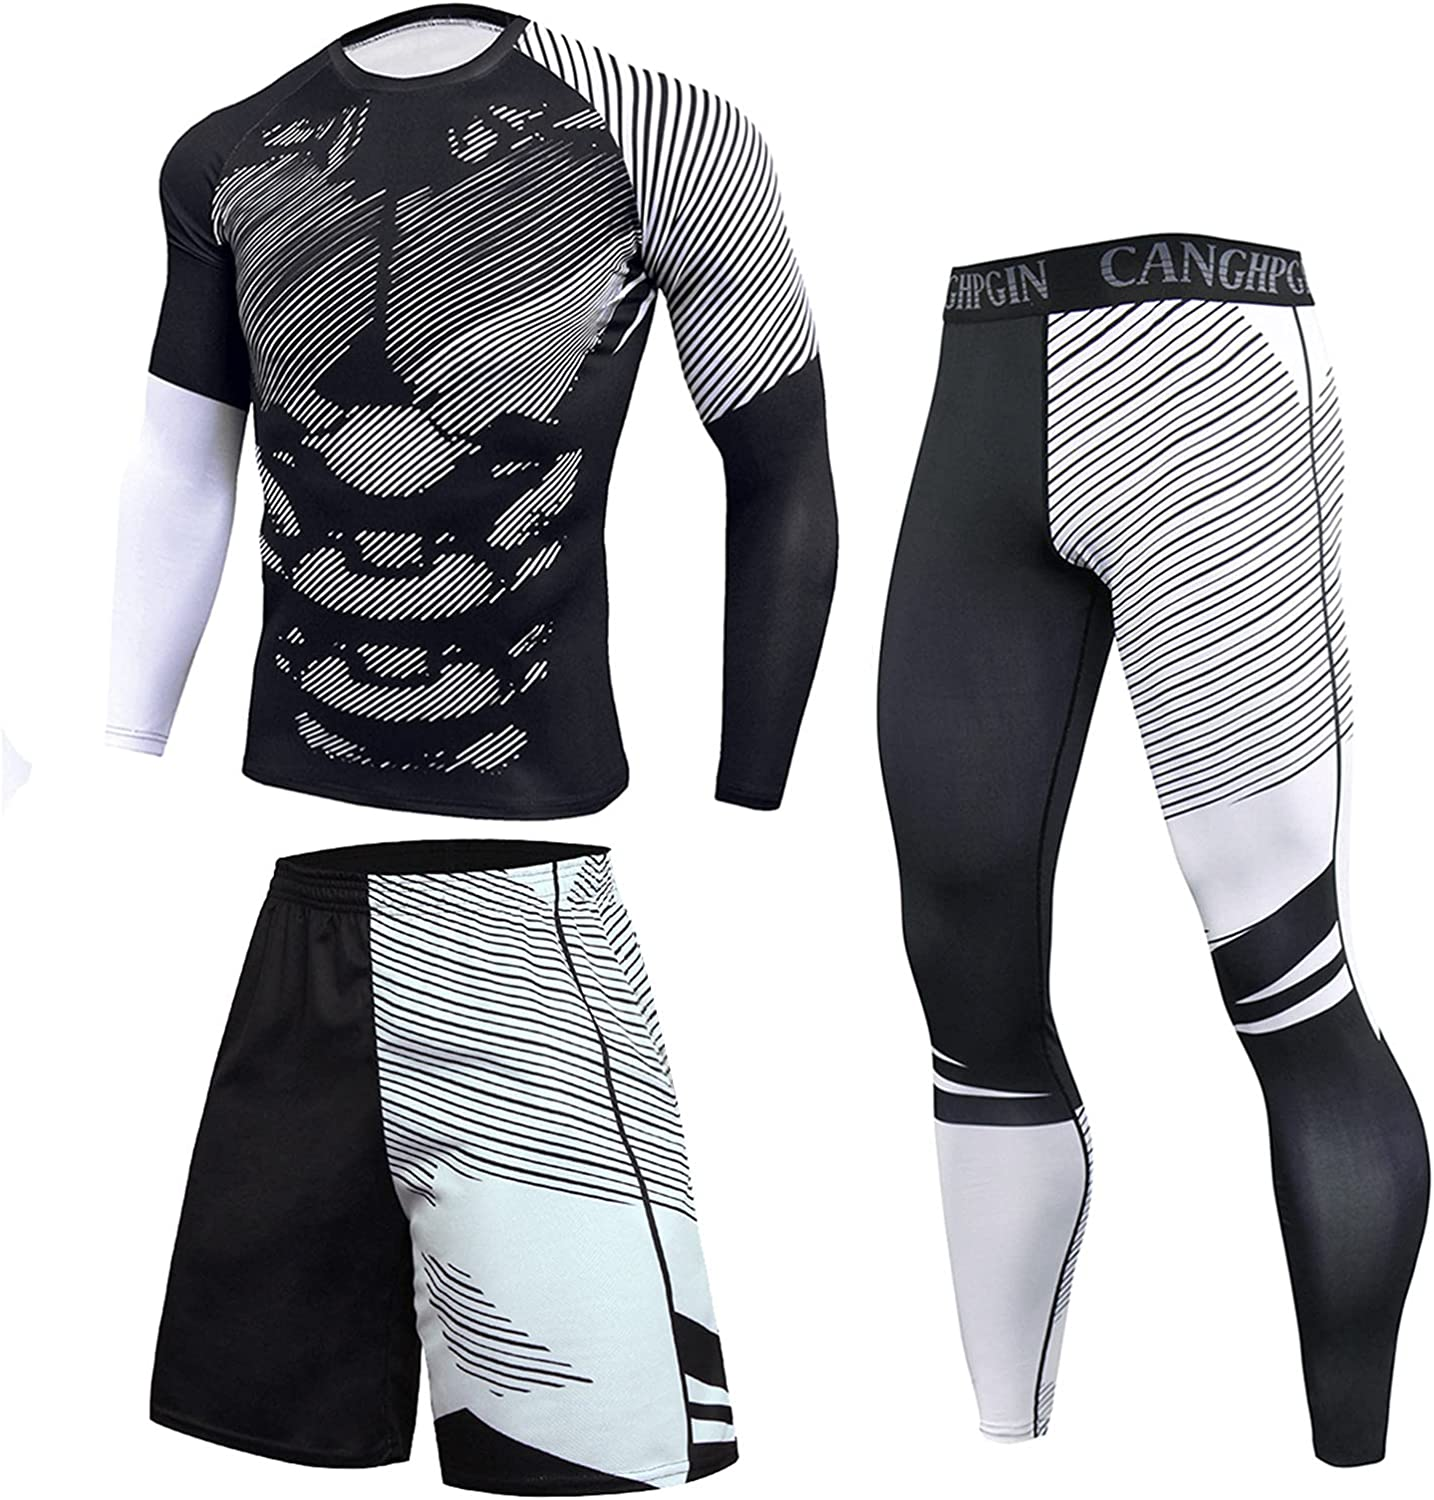 FUNEY 3PC Men's Sports Running Set Long Sleeve Shirt+Long Pants+Skin Tight Shorts Quick Dry Fitness Tracksuit Gym Yoga Suits